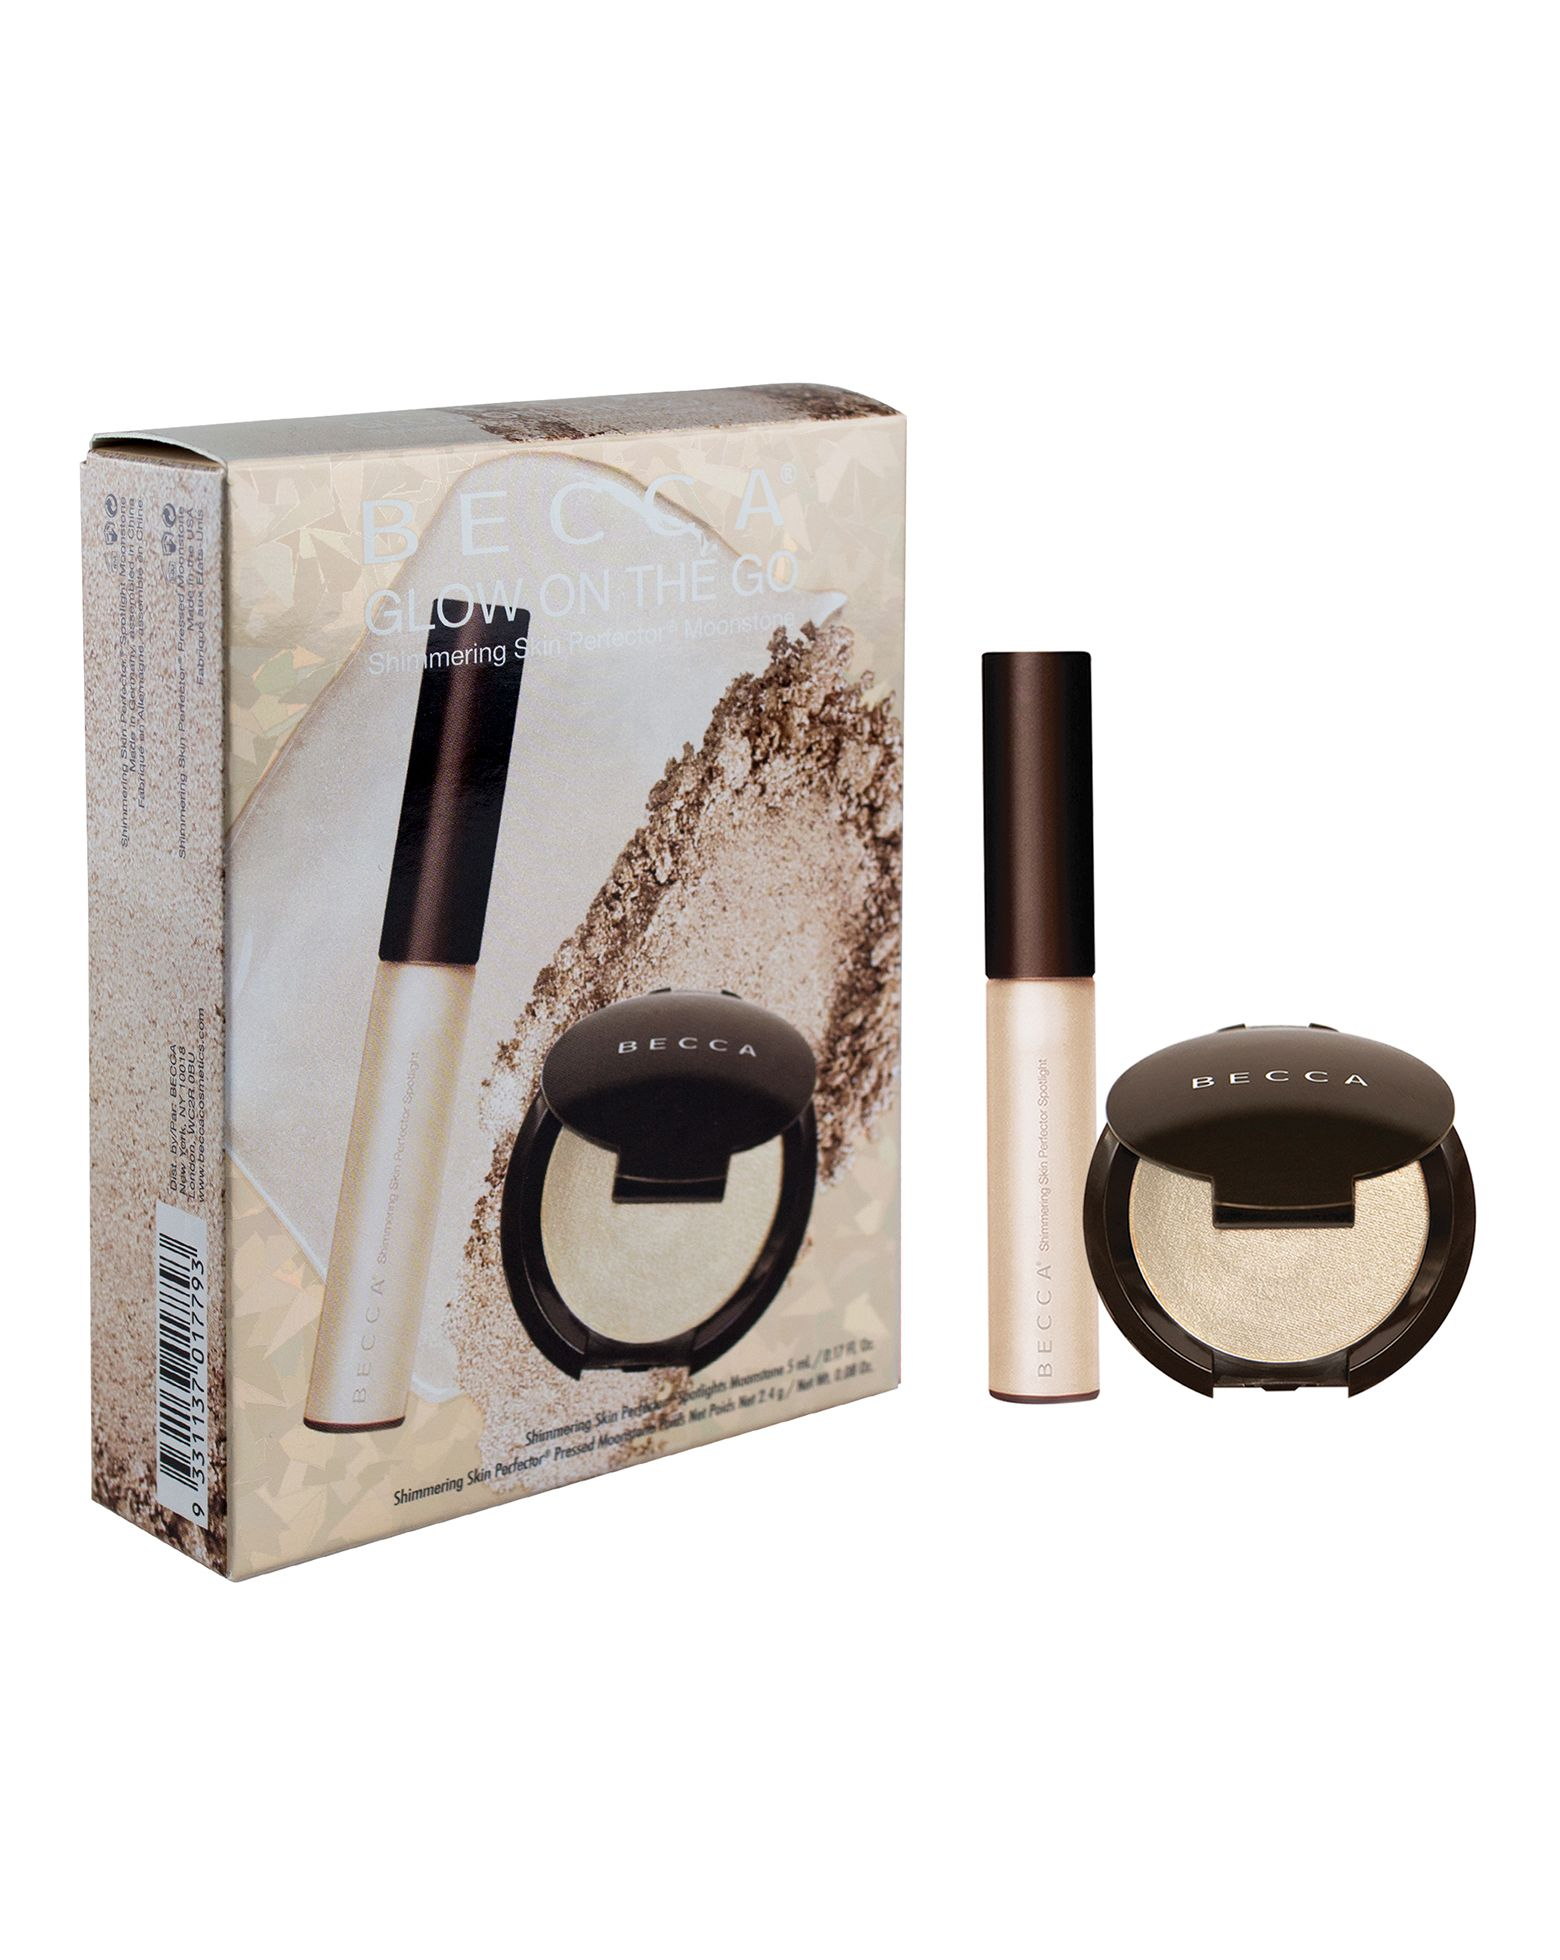 Moonstone glow on the go collection by becca lista de deseados